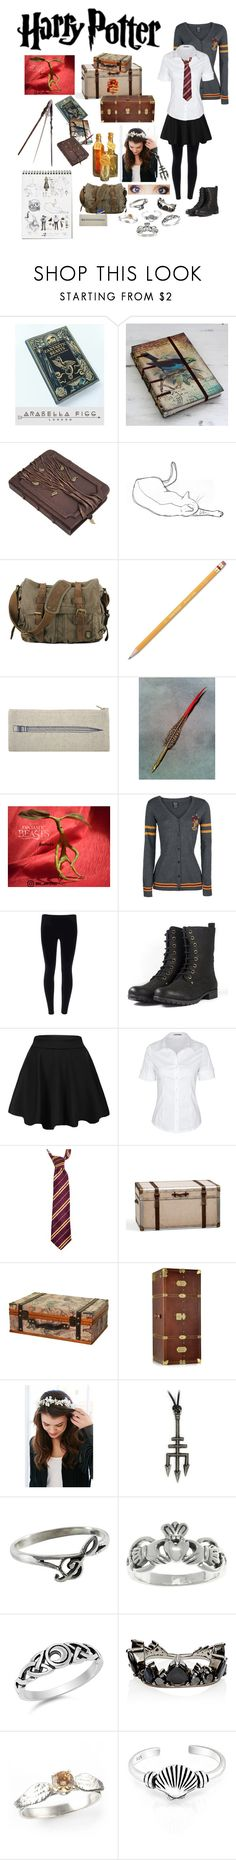 """Harry Potter OC - uniform"" by seachild41539 ❤ liked on Polyvore featuring NOVICA, S.W.O.R.D., Paper Mate, Thomaspaul, Pottery Barn, The Bridge, Urban Outfitters, Carolina Glamour Collection, Fernando Jorge and Bling Jewelry"